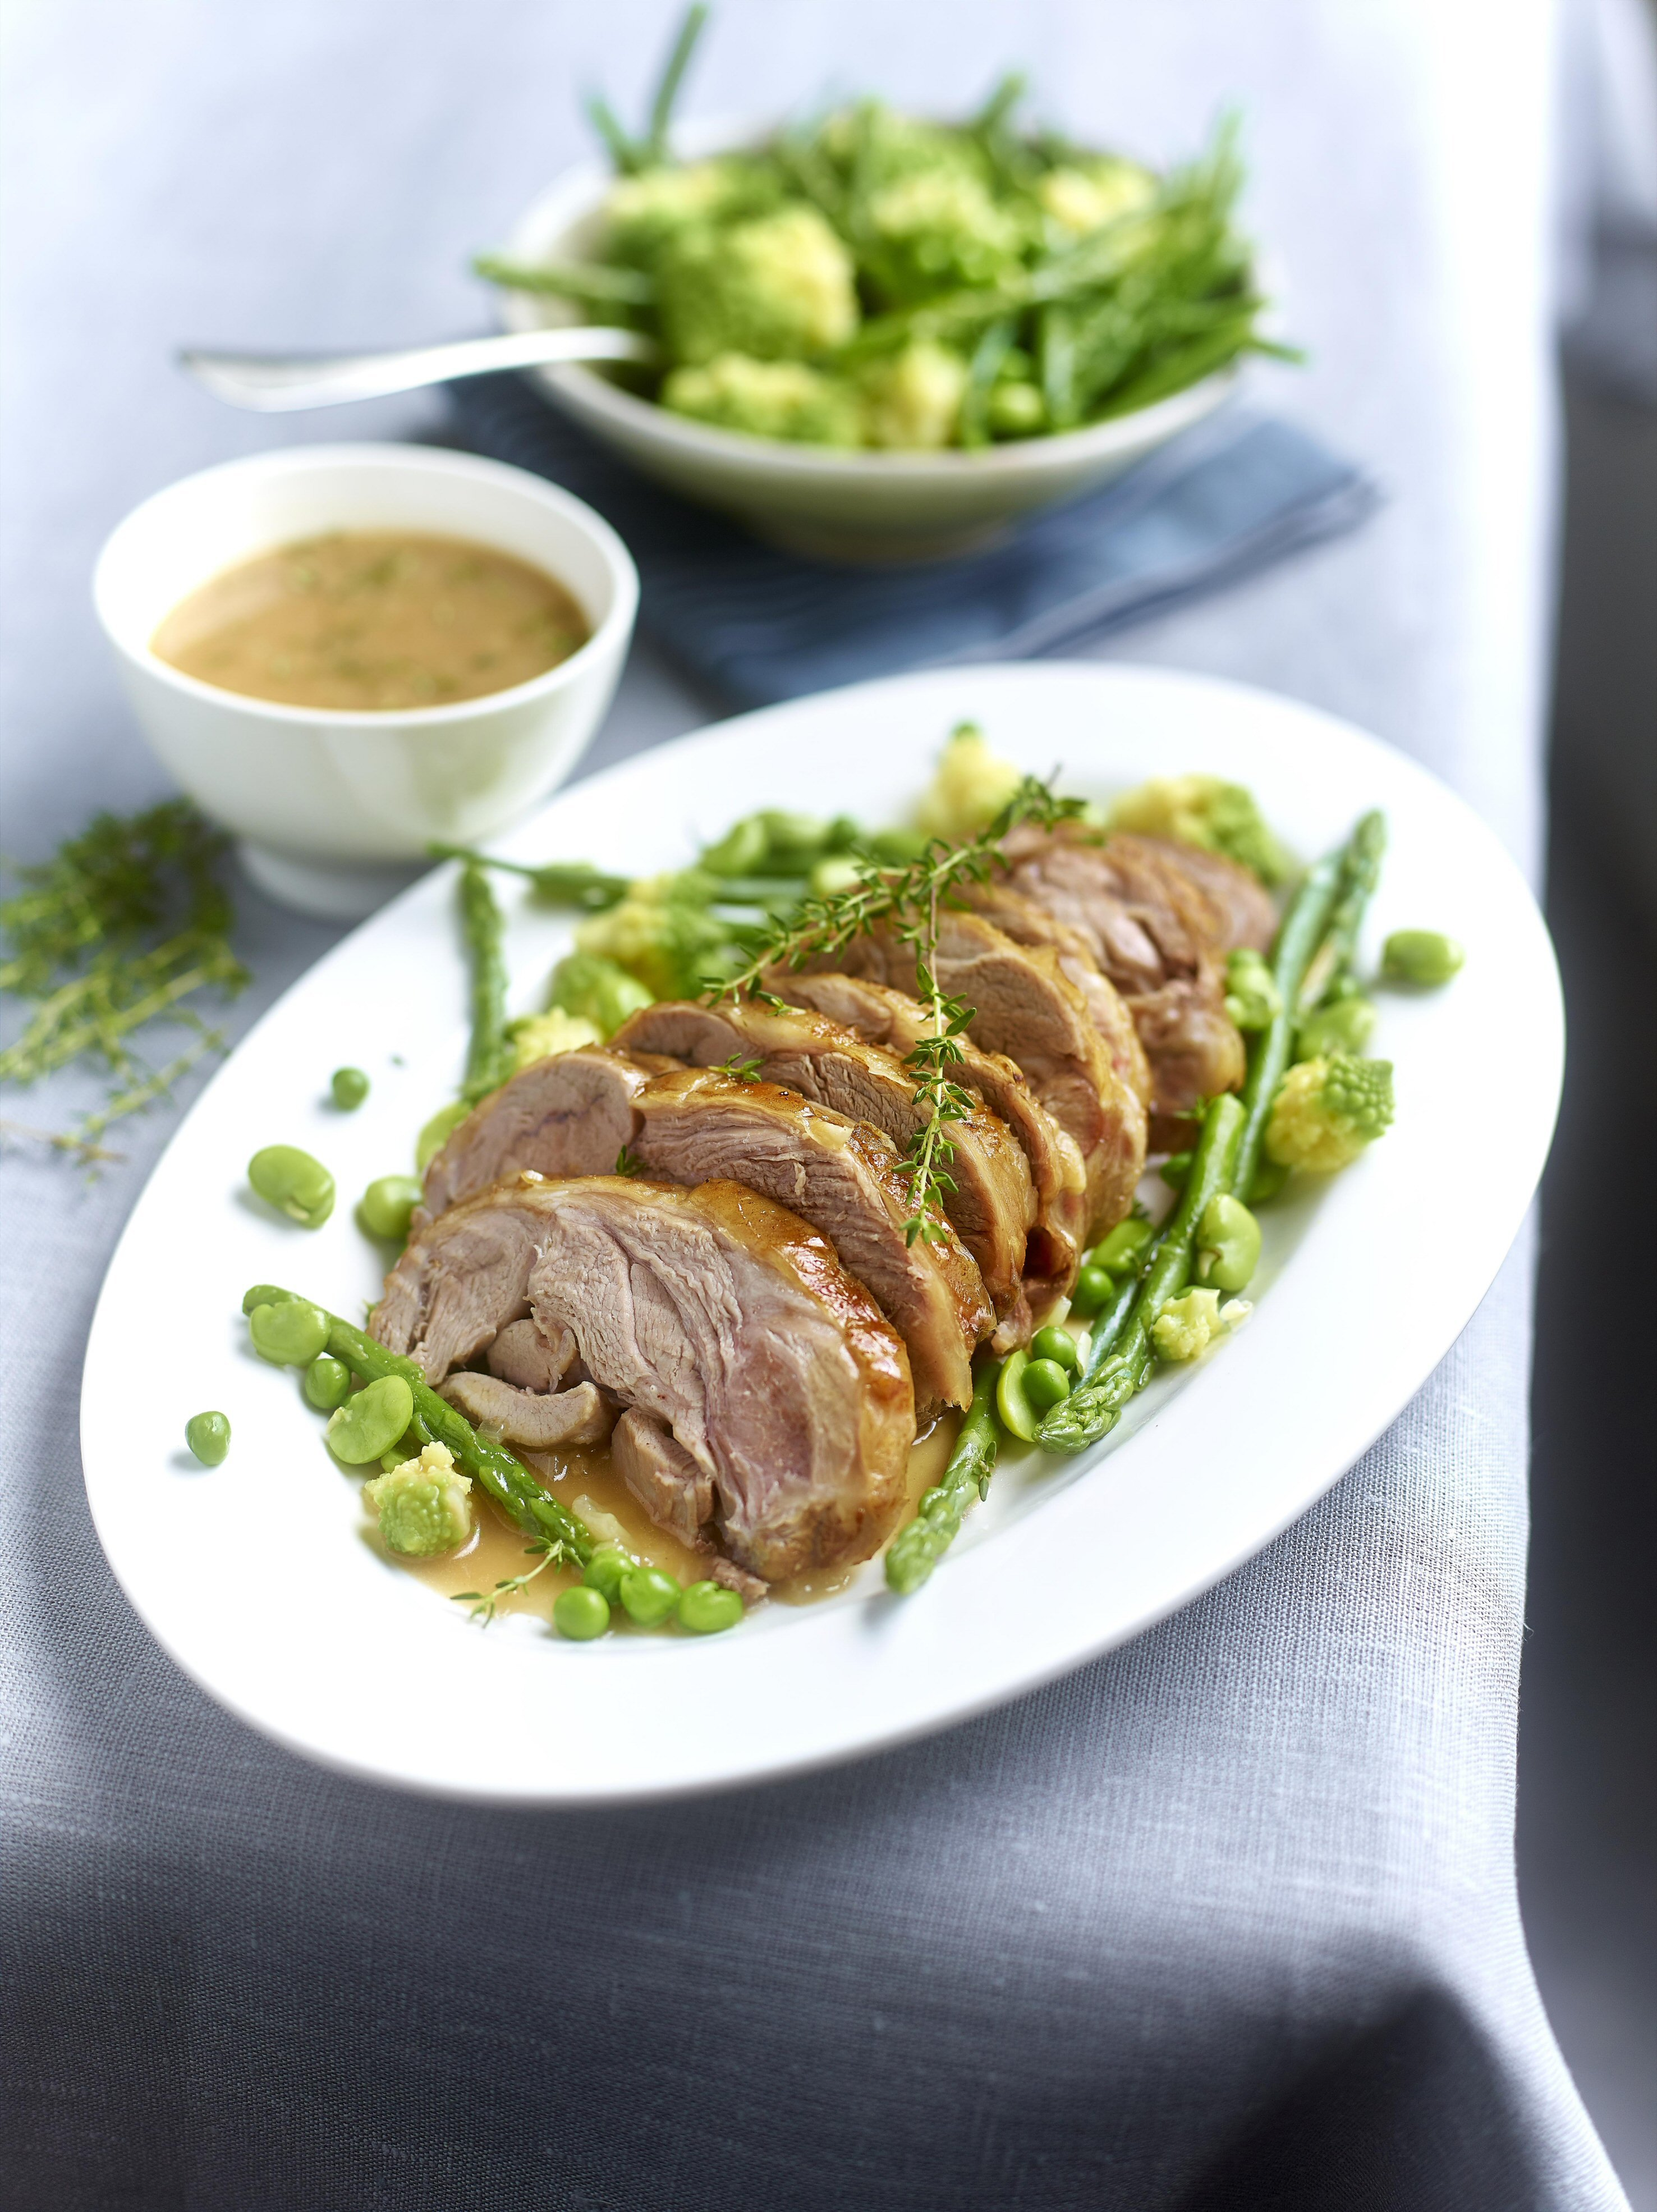 ROAST LAMB WITH THYME AND SPRING VEGETABLES